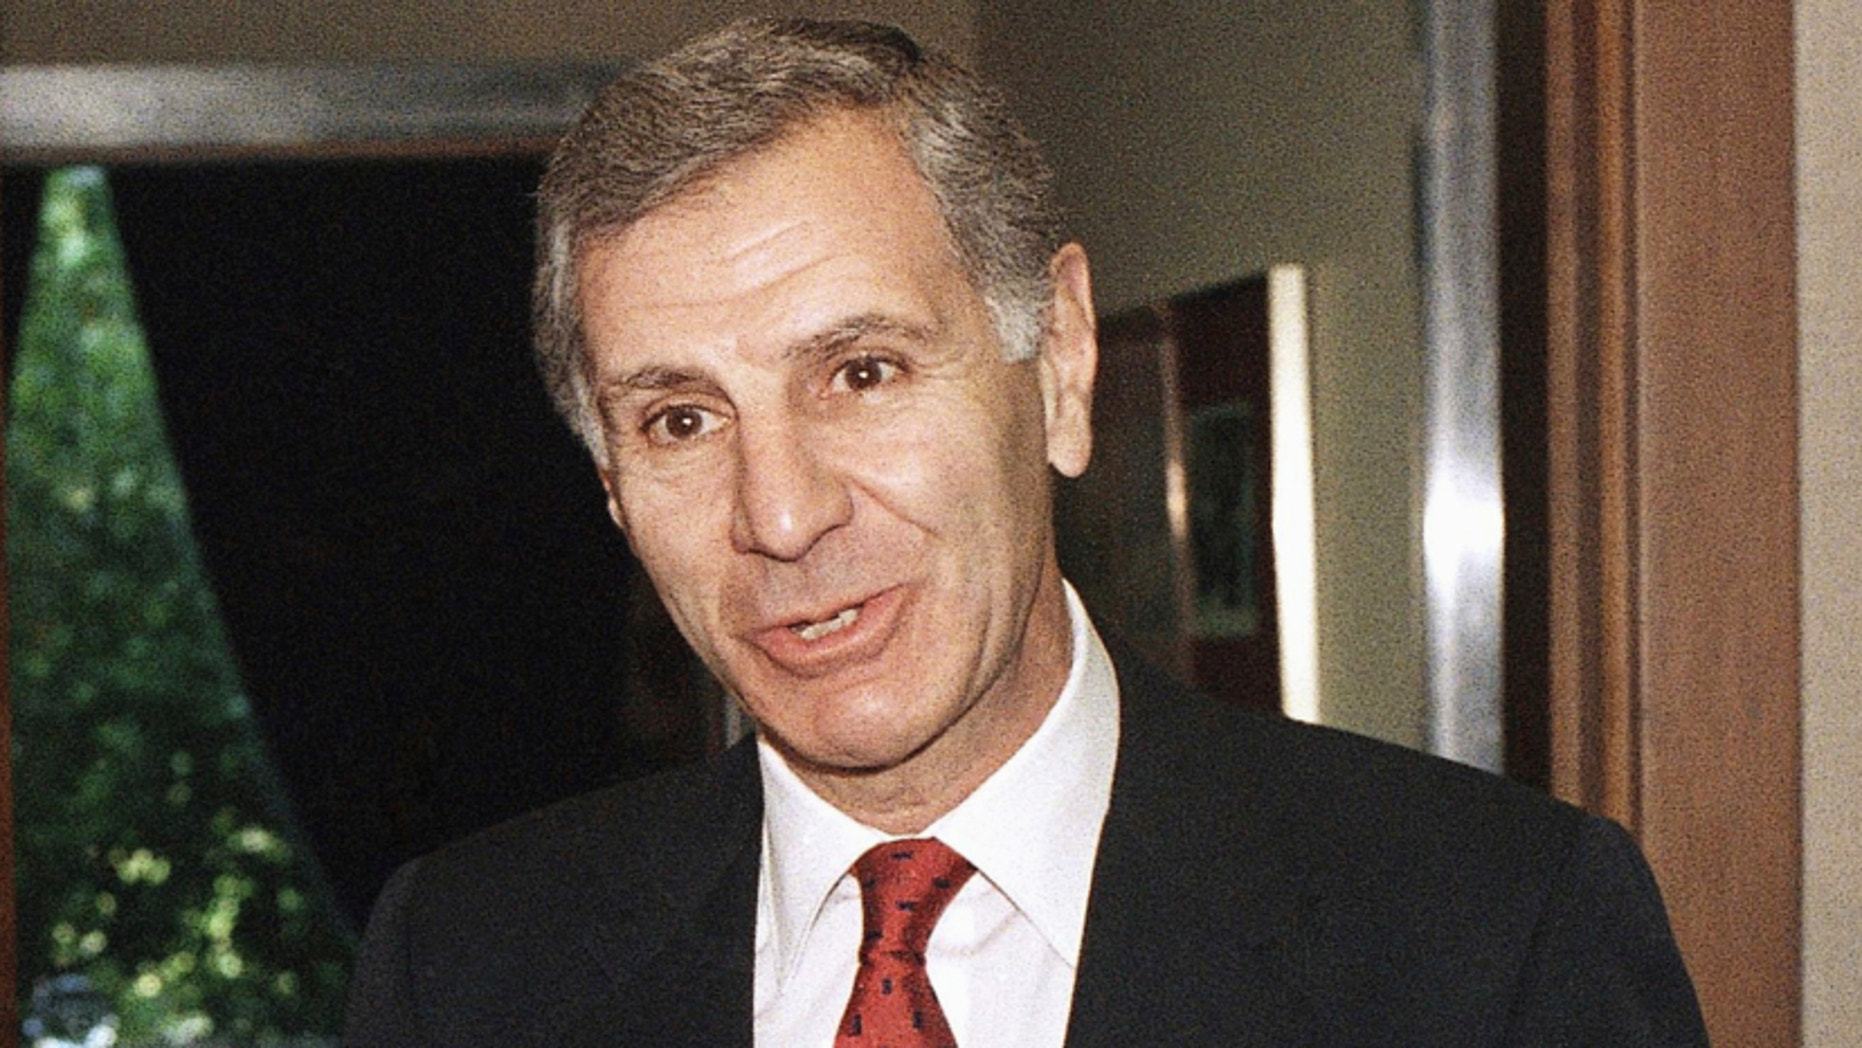 George Deukmejian was governor of California from 1983 to 1991. He died at age 89 on Tuesday, May 8, 2018.